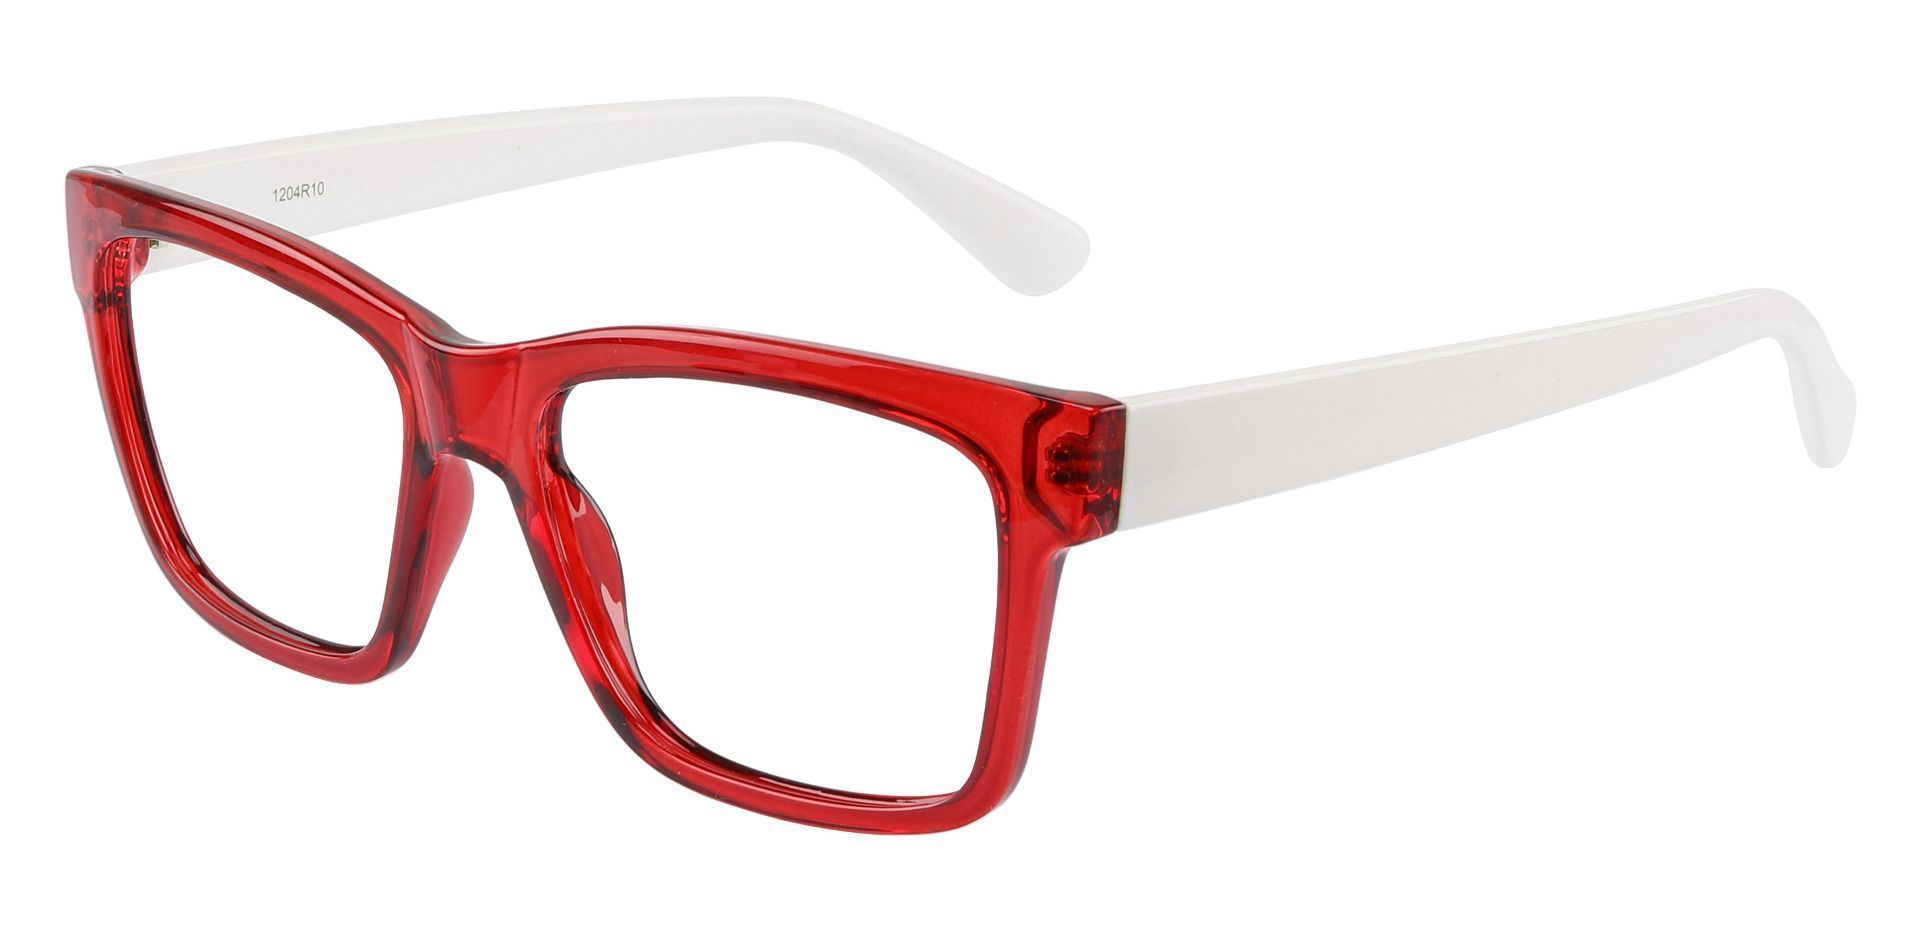 Brinley Square Non-Rx Glasses - Red Crystal/White Temple